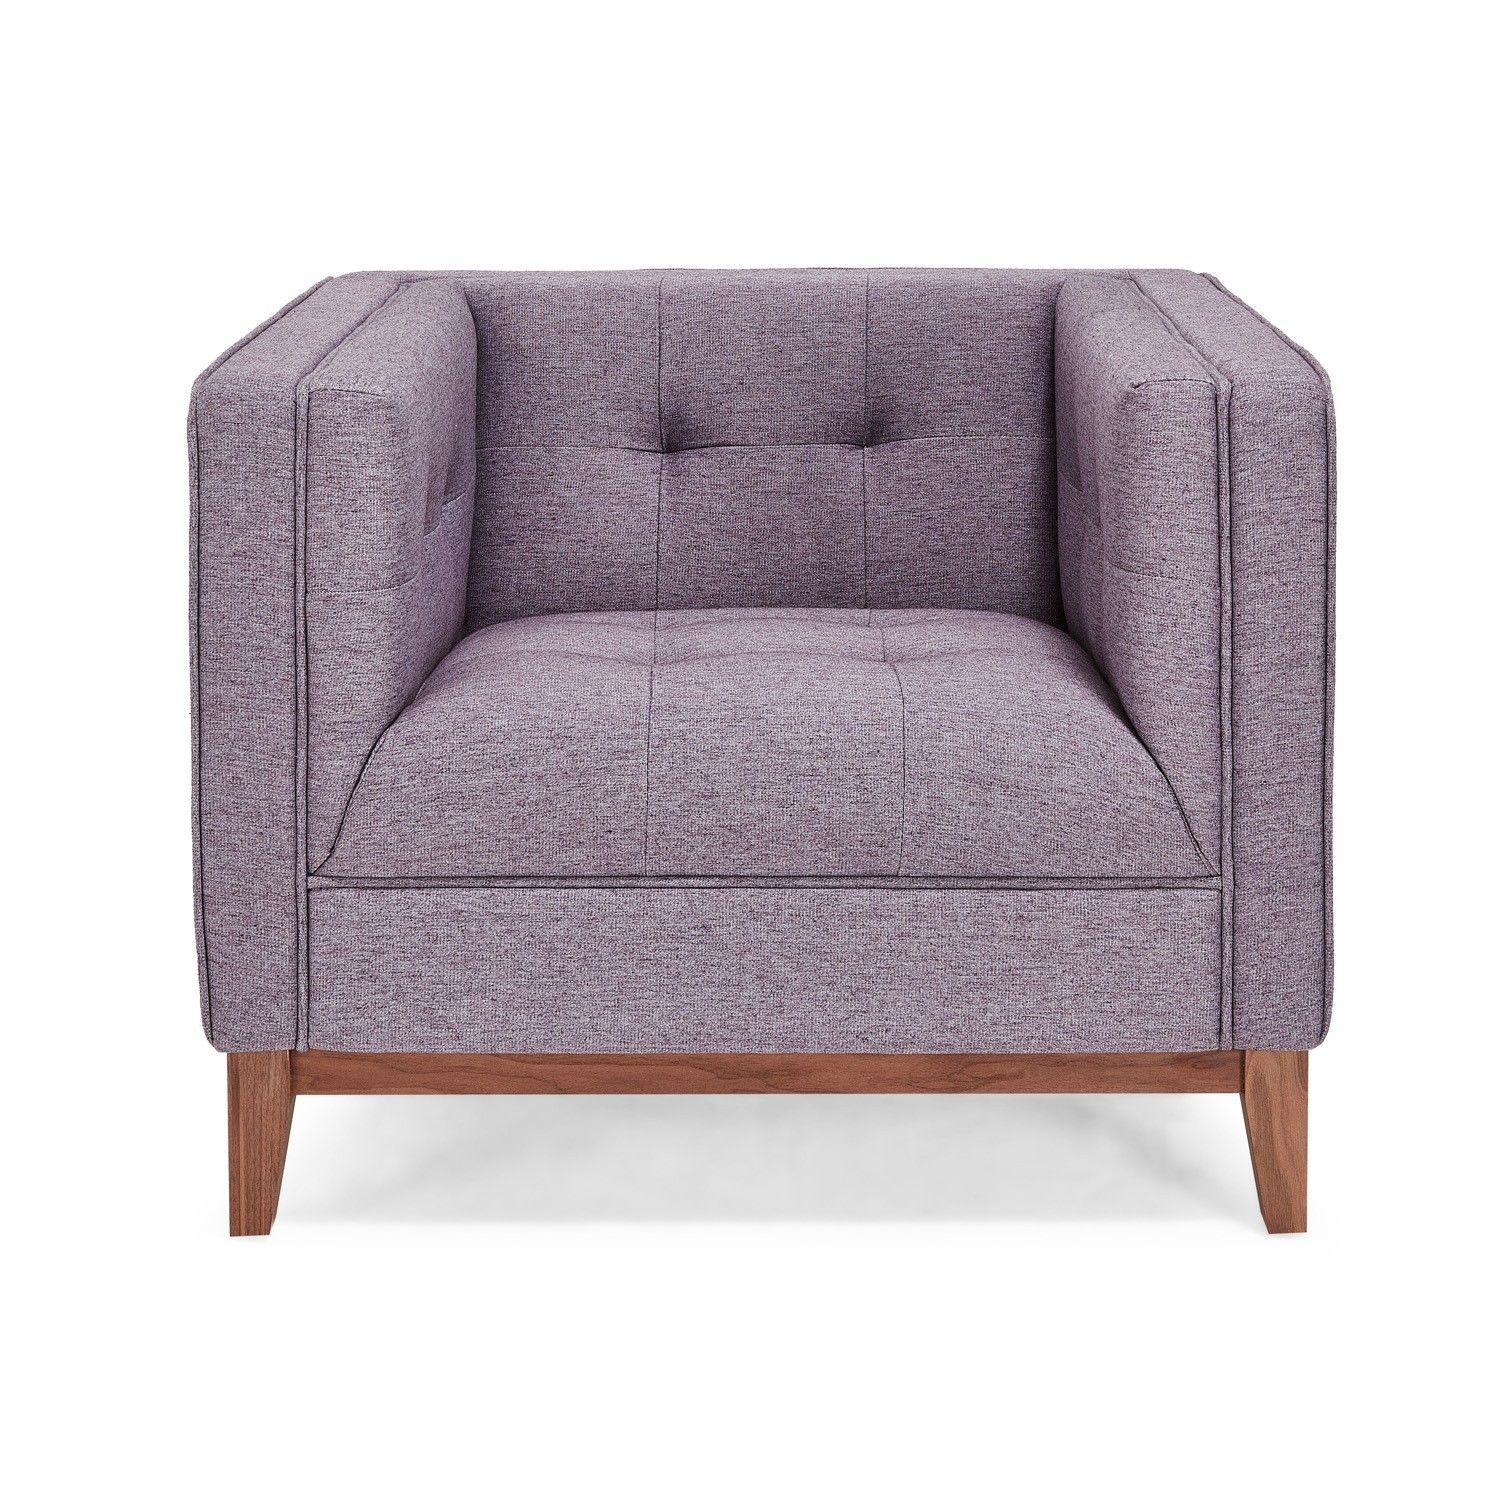 Discover The Atwood Chair From Gus* Modern At ABC Carpet U0026 Home. A Clean  And Tailored Design For Contemporary Interiors.